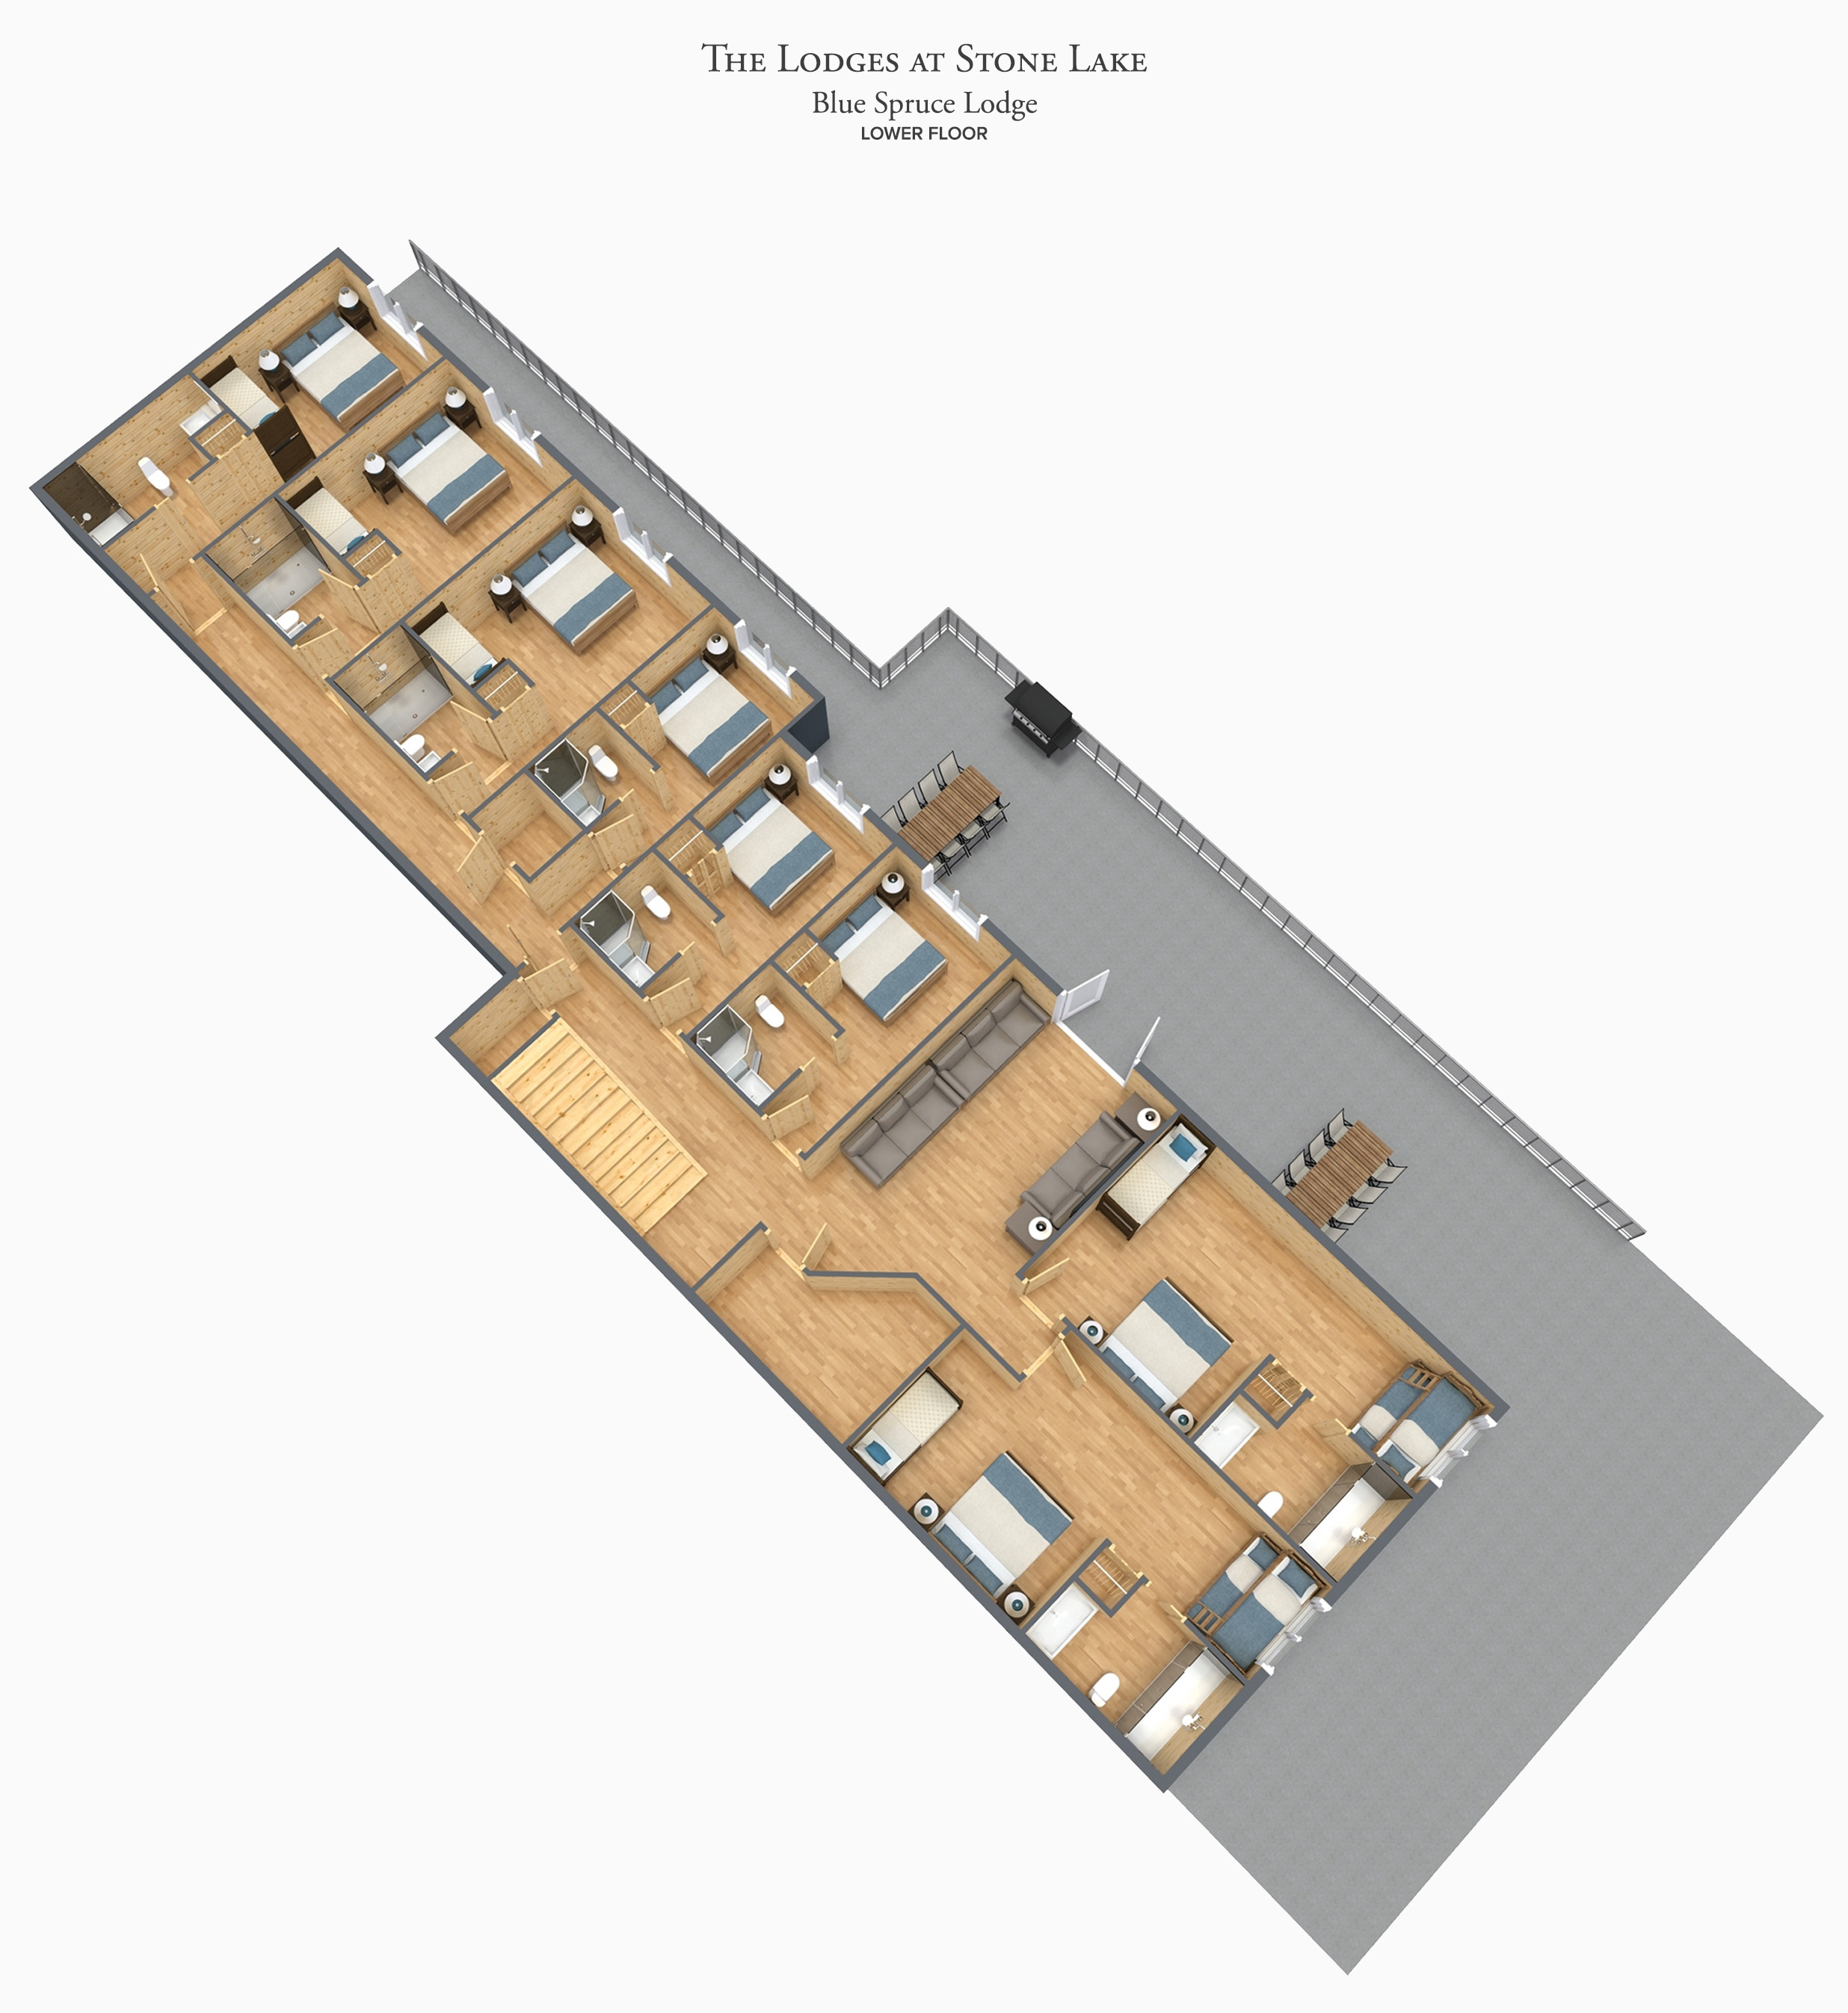 Blue Spruce - Lower Level Floor Plan - The Lodges at Stone Lake.jpg